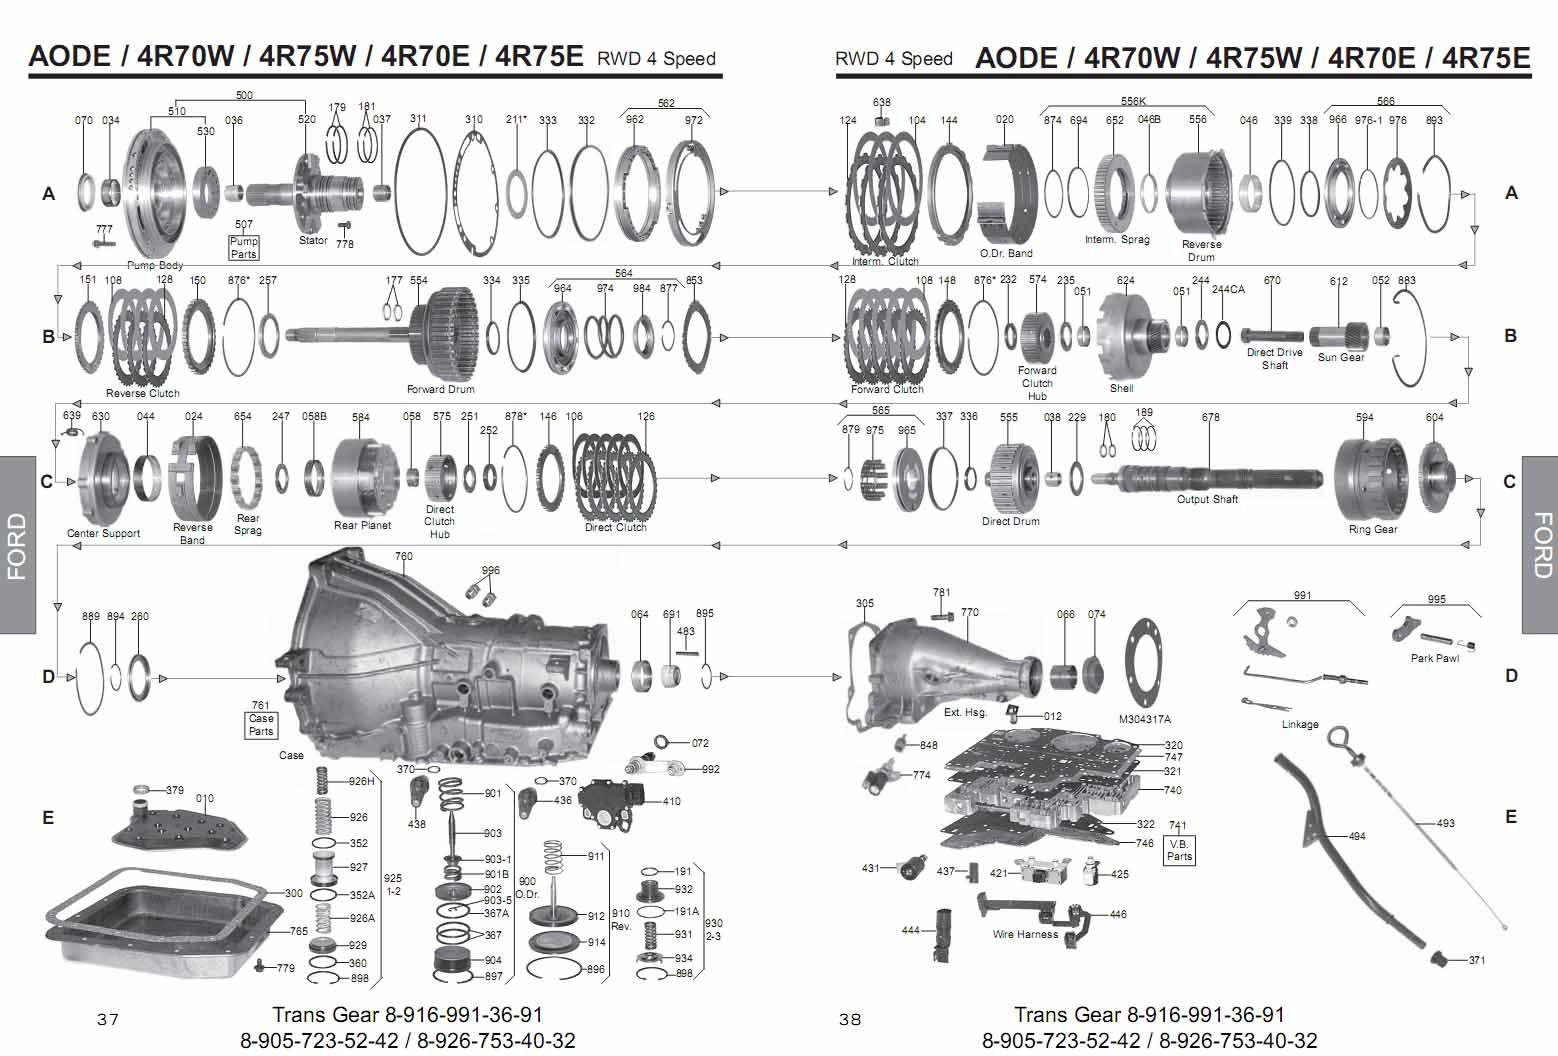 4l80e wiring diagram wirdig ford 4r75e transmission diagram on aode wiring diagram for trans